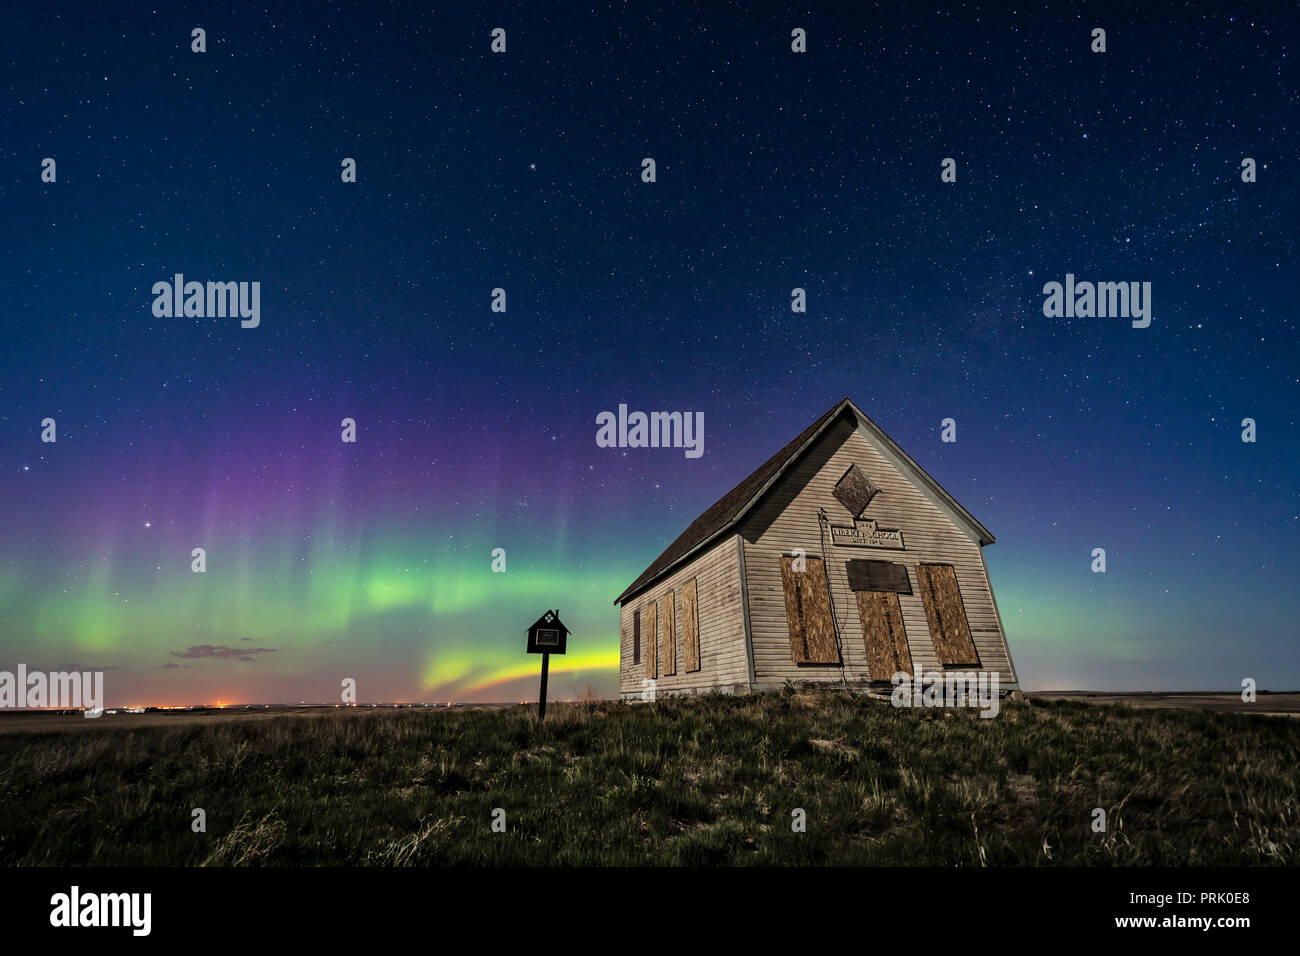 The 1910 Liberty Schoolhouse, a classic pioneer one-room school, on the Alberta prairie under the stars on a spring night, with an aurora dancing to t - Stock Image